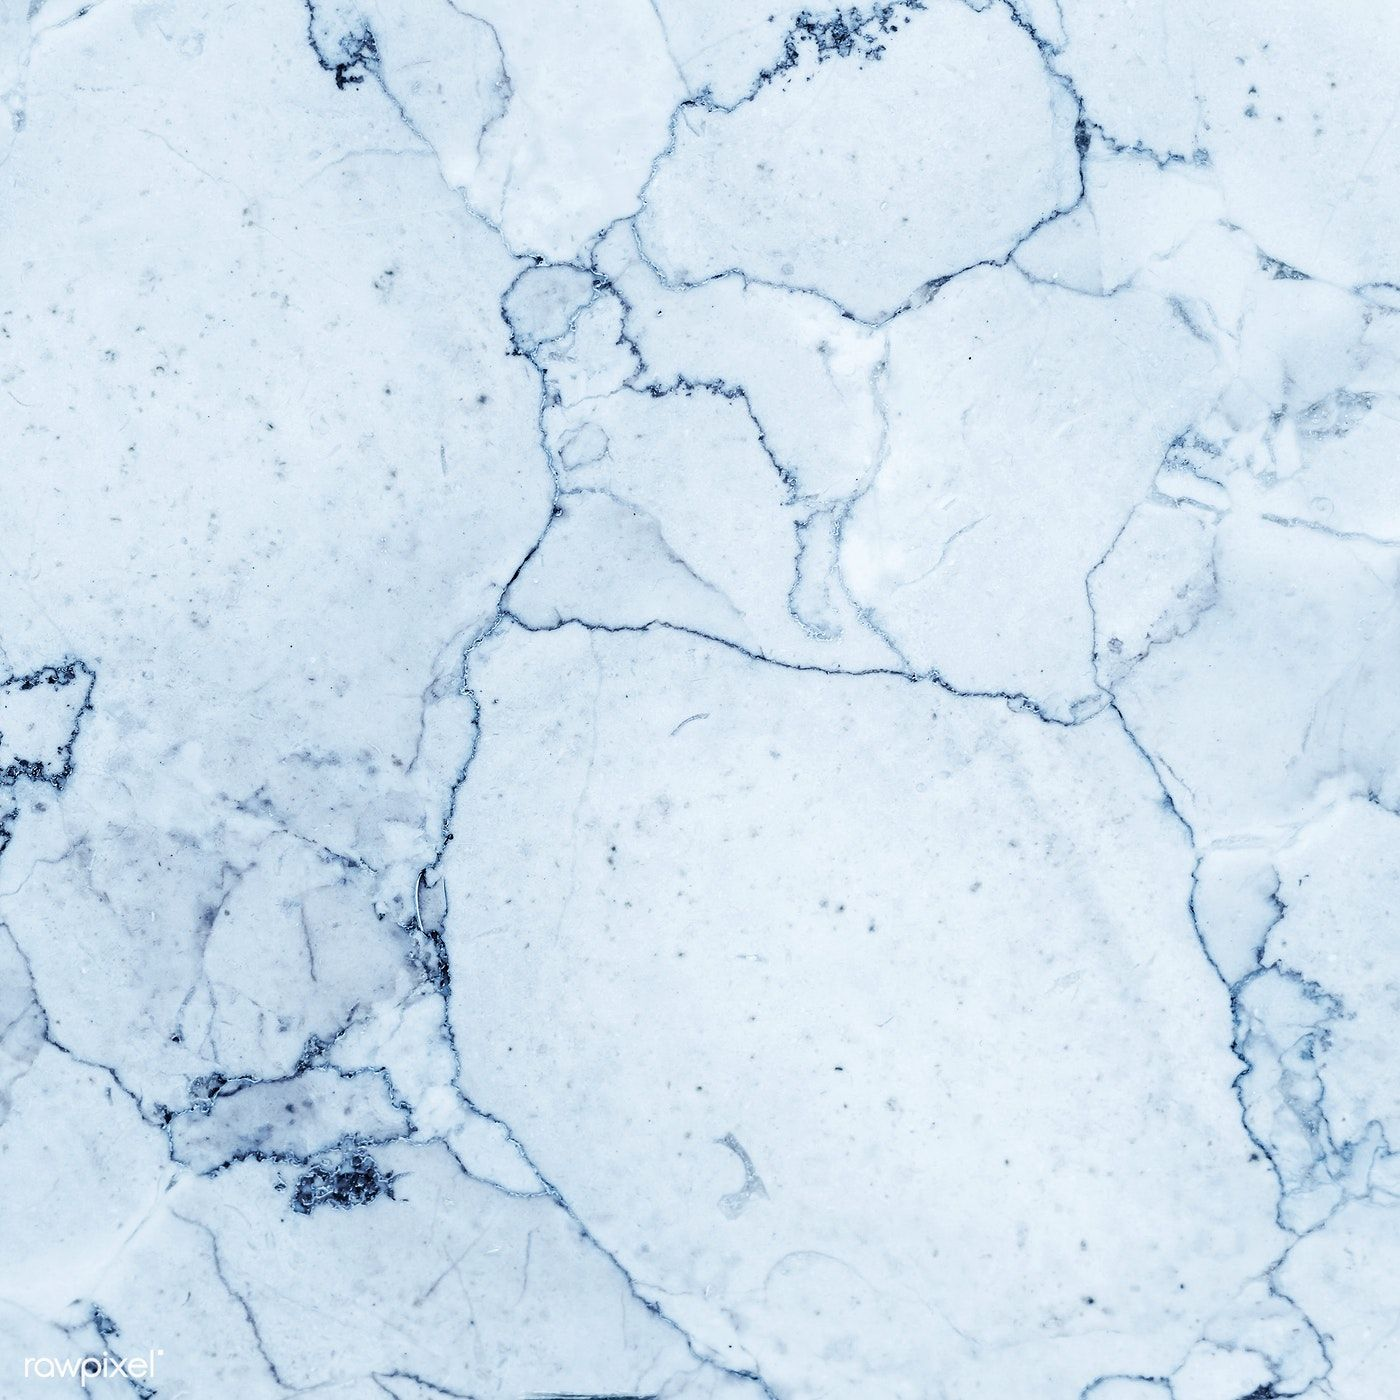 Download Premium Image Of Blue Marble Texture With Streaks Socials Ads Blue Marble Marble Texture Gold Texture Background